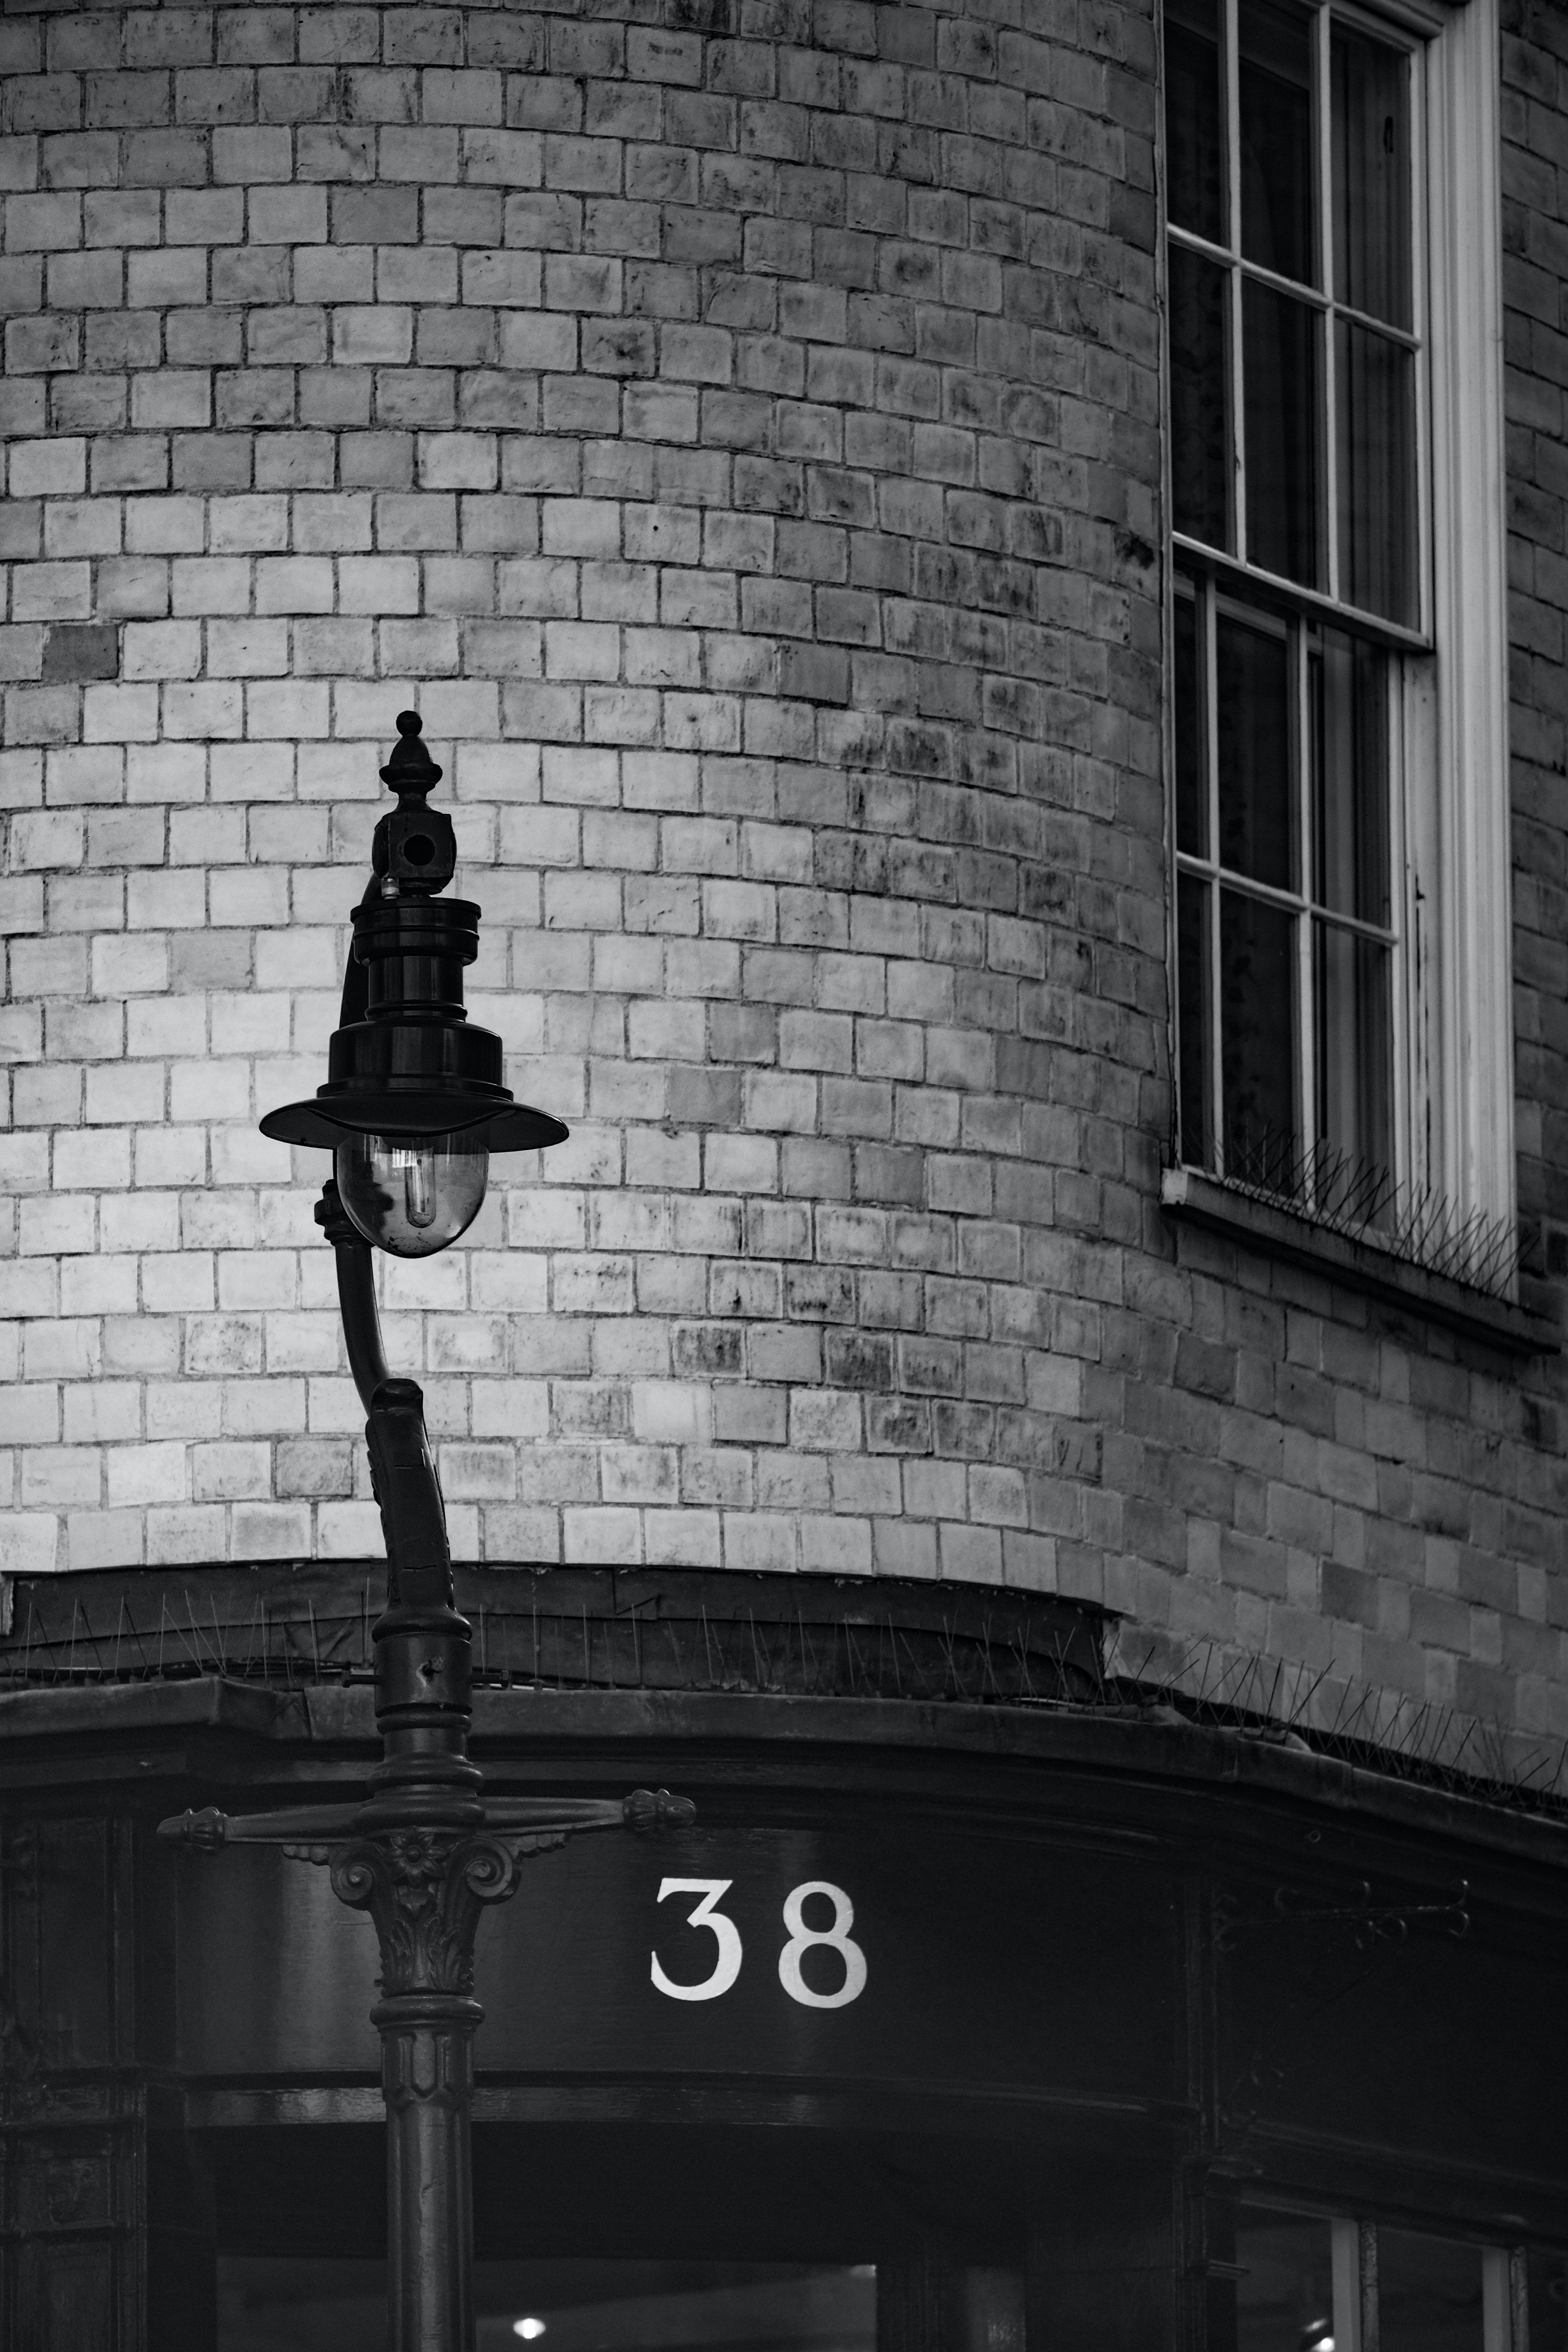 Black and white shot of traditional street light near brick building with number 38 sign